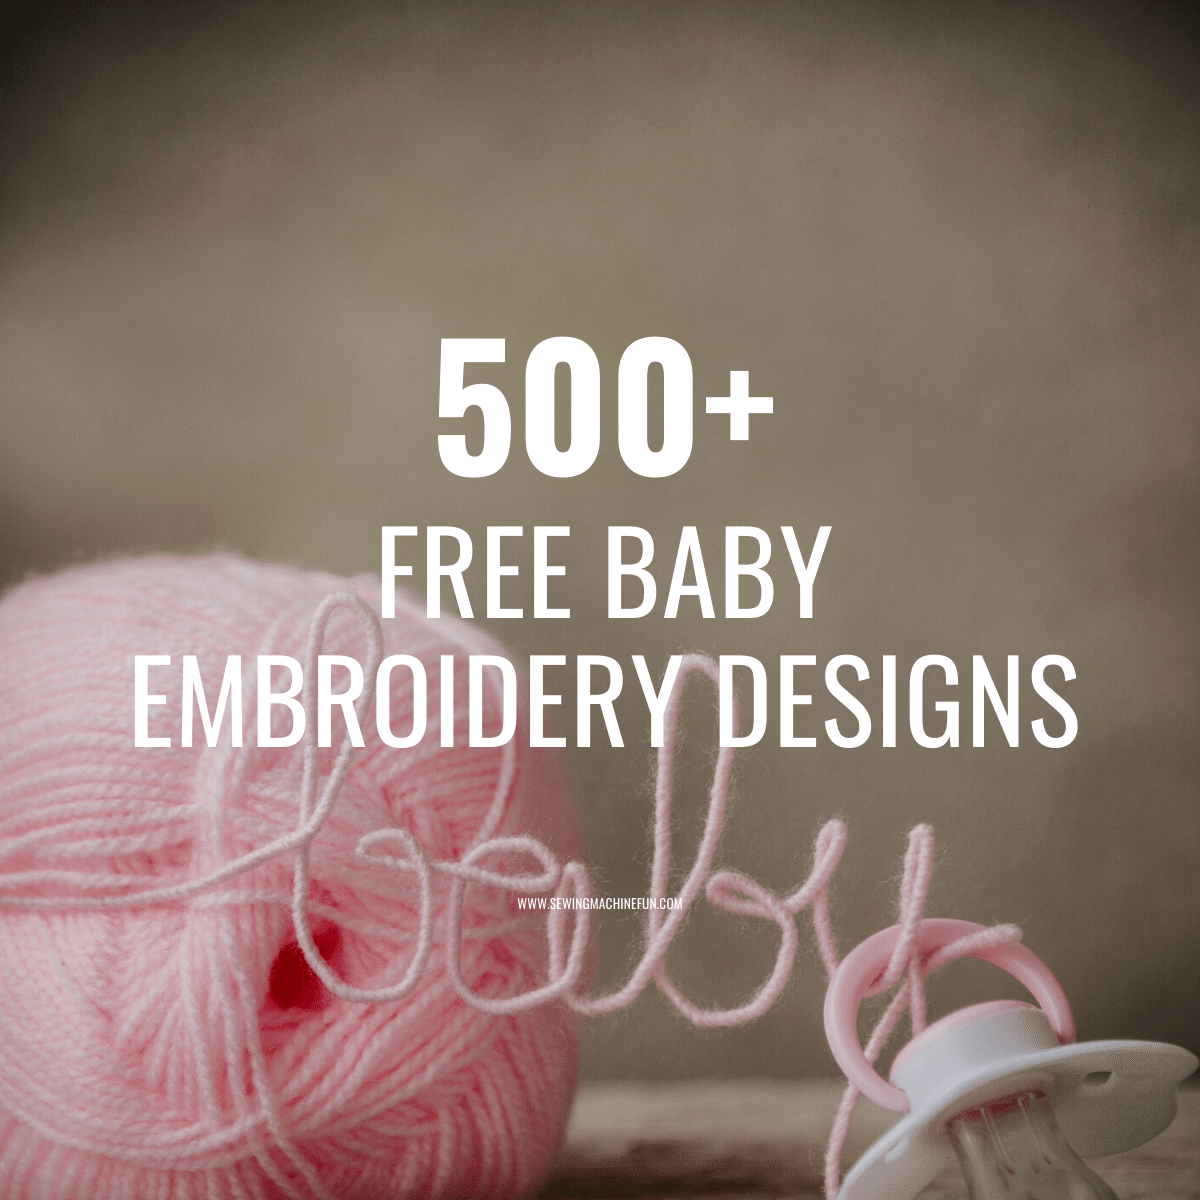 500+ Free Baby Embroidery Designs to Download for Your Machine